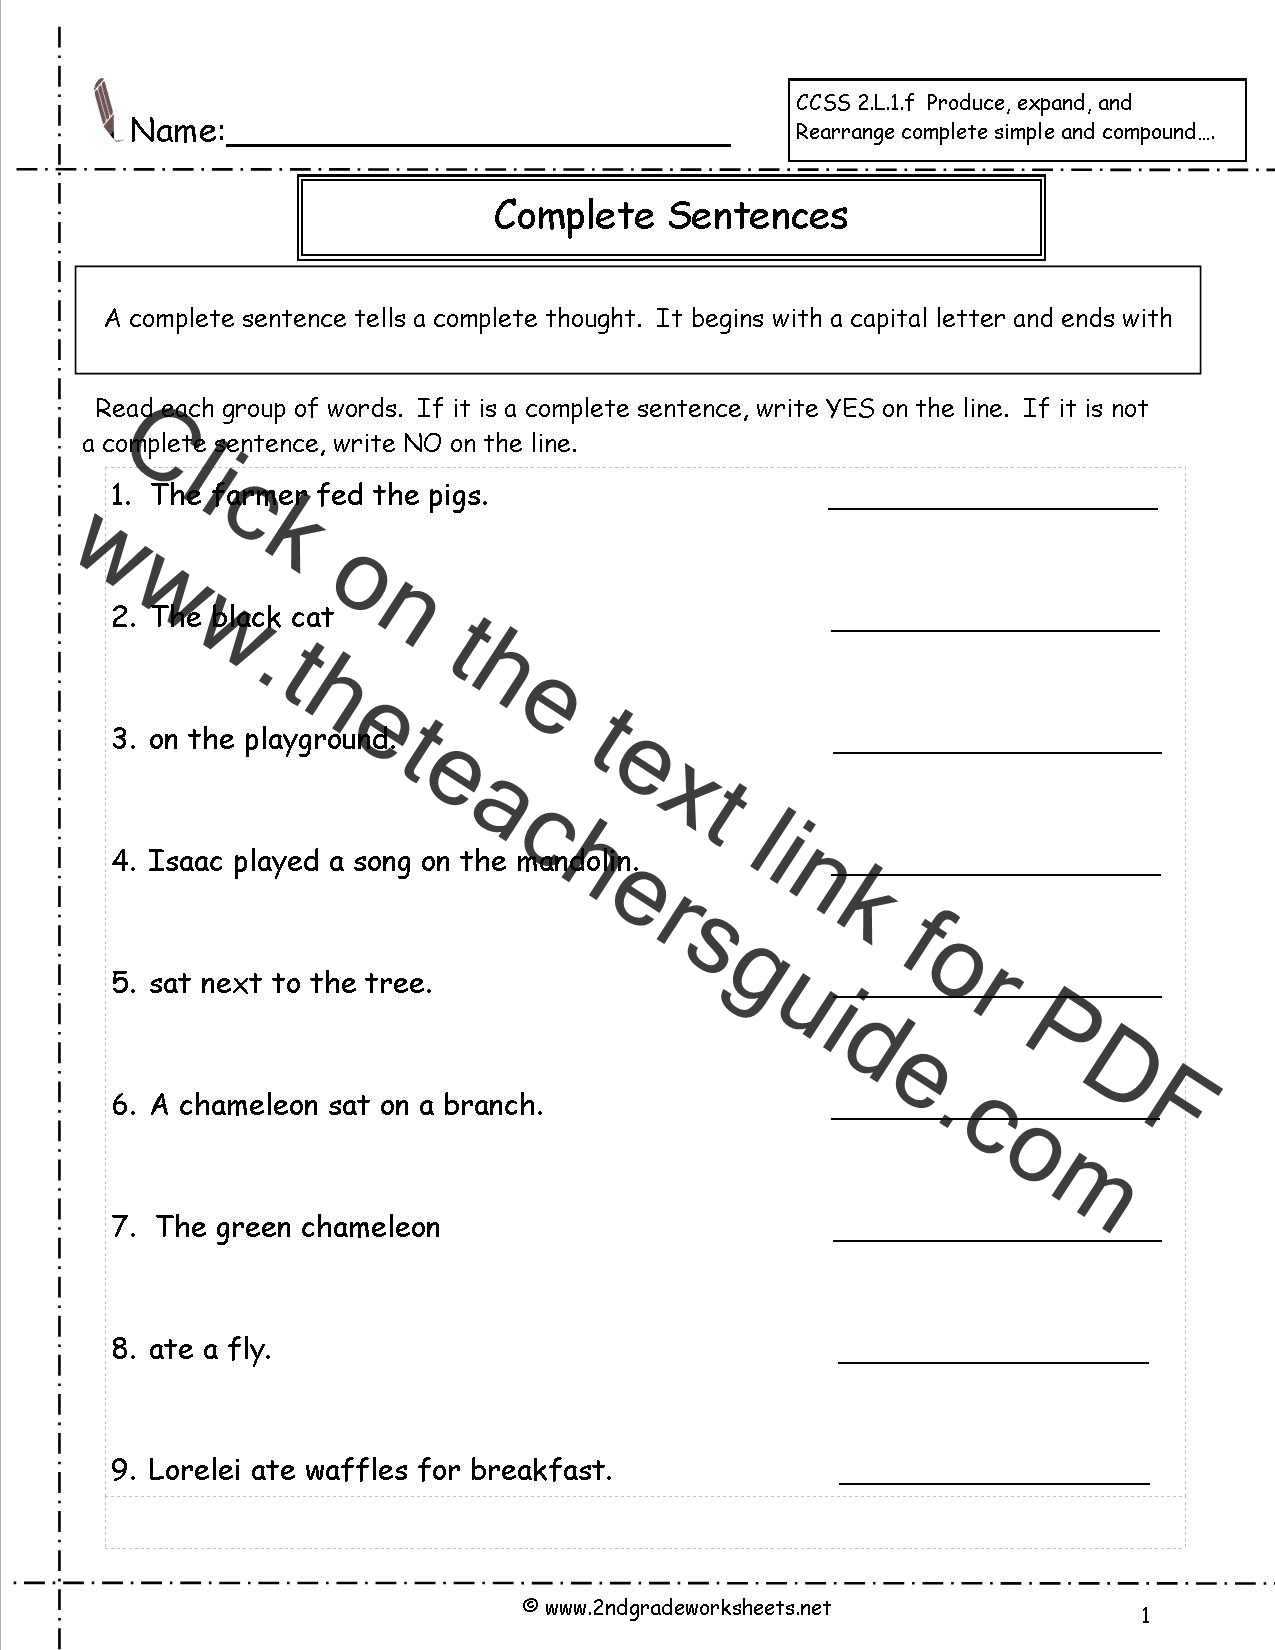 Second Grade Sentences Worksheets CCSS 2L1f Worksheets – 2nd Grade Writing Worksheets